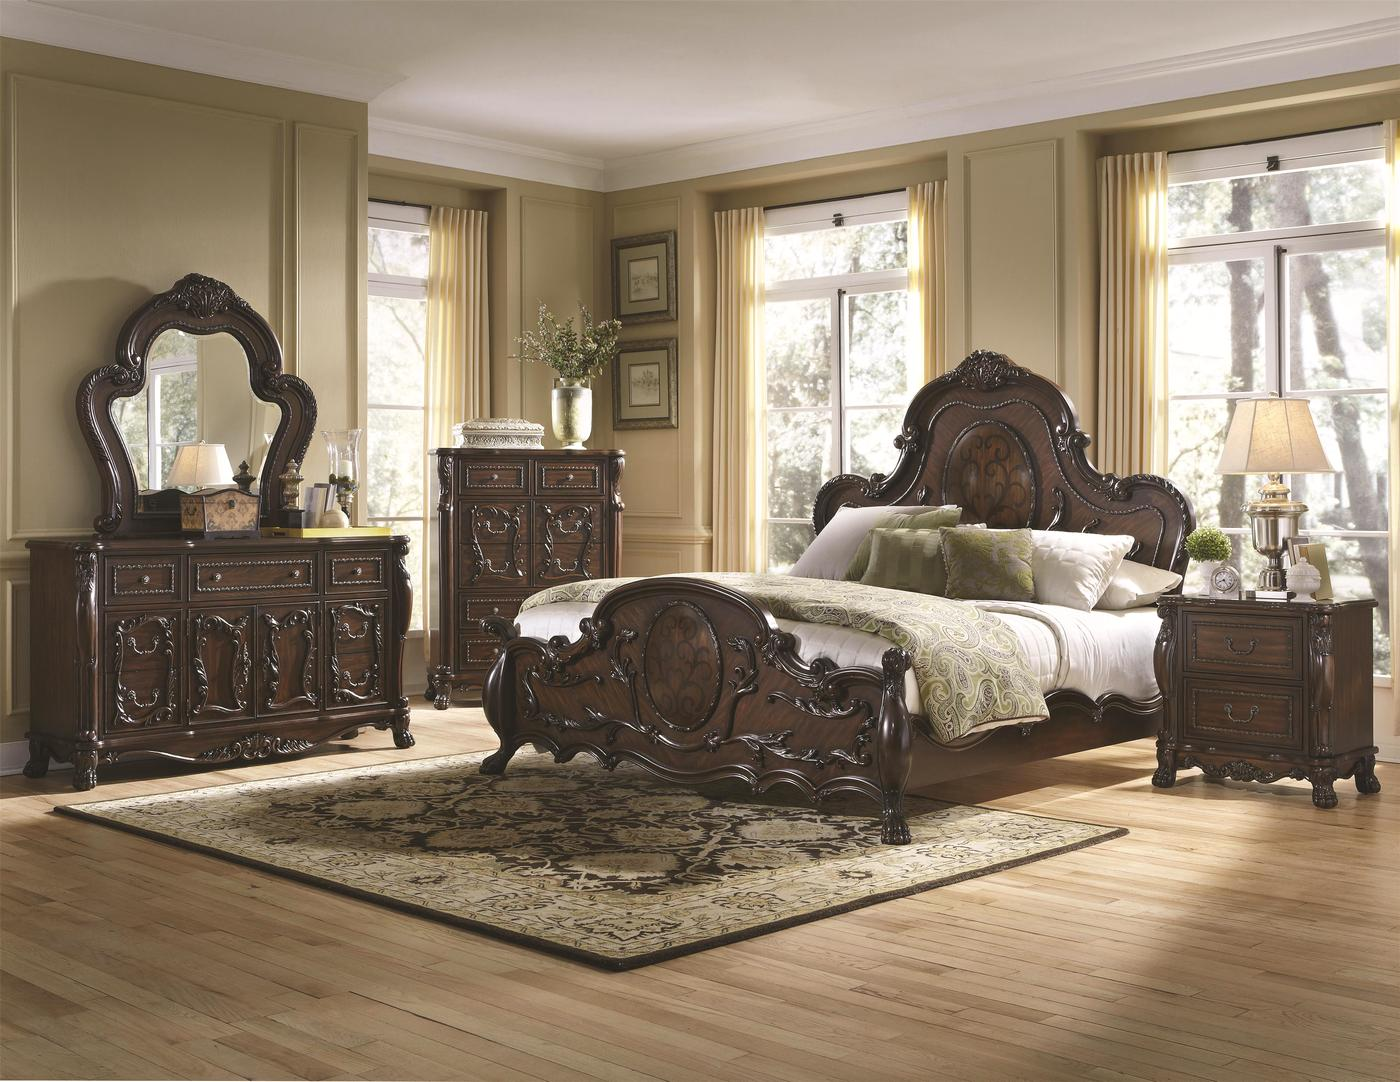 Arte De Mexico Beds Antique Bedroom Set Cherry Bedroom Sets Shop Factory